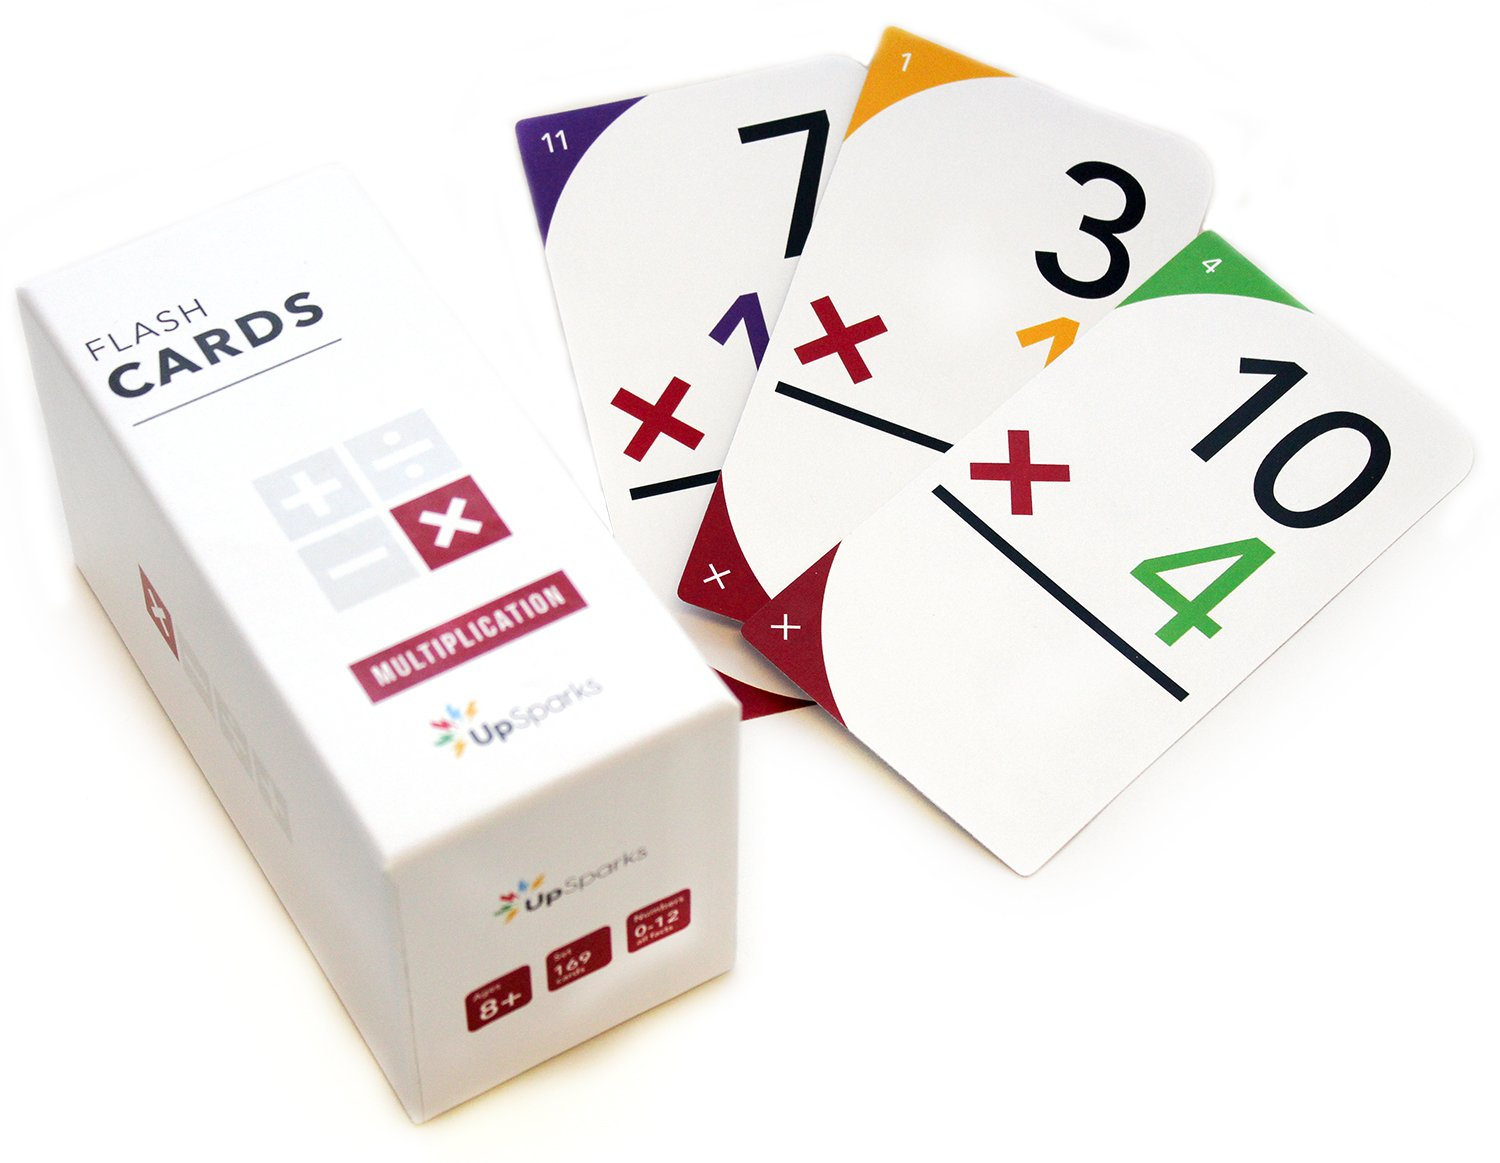 image about Printable Multiplication Flash Cards 0-12 known as Order UpSparks Multiplication Flash Playing cards (0-12 All Information